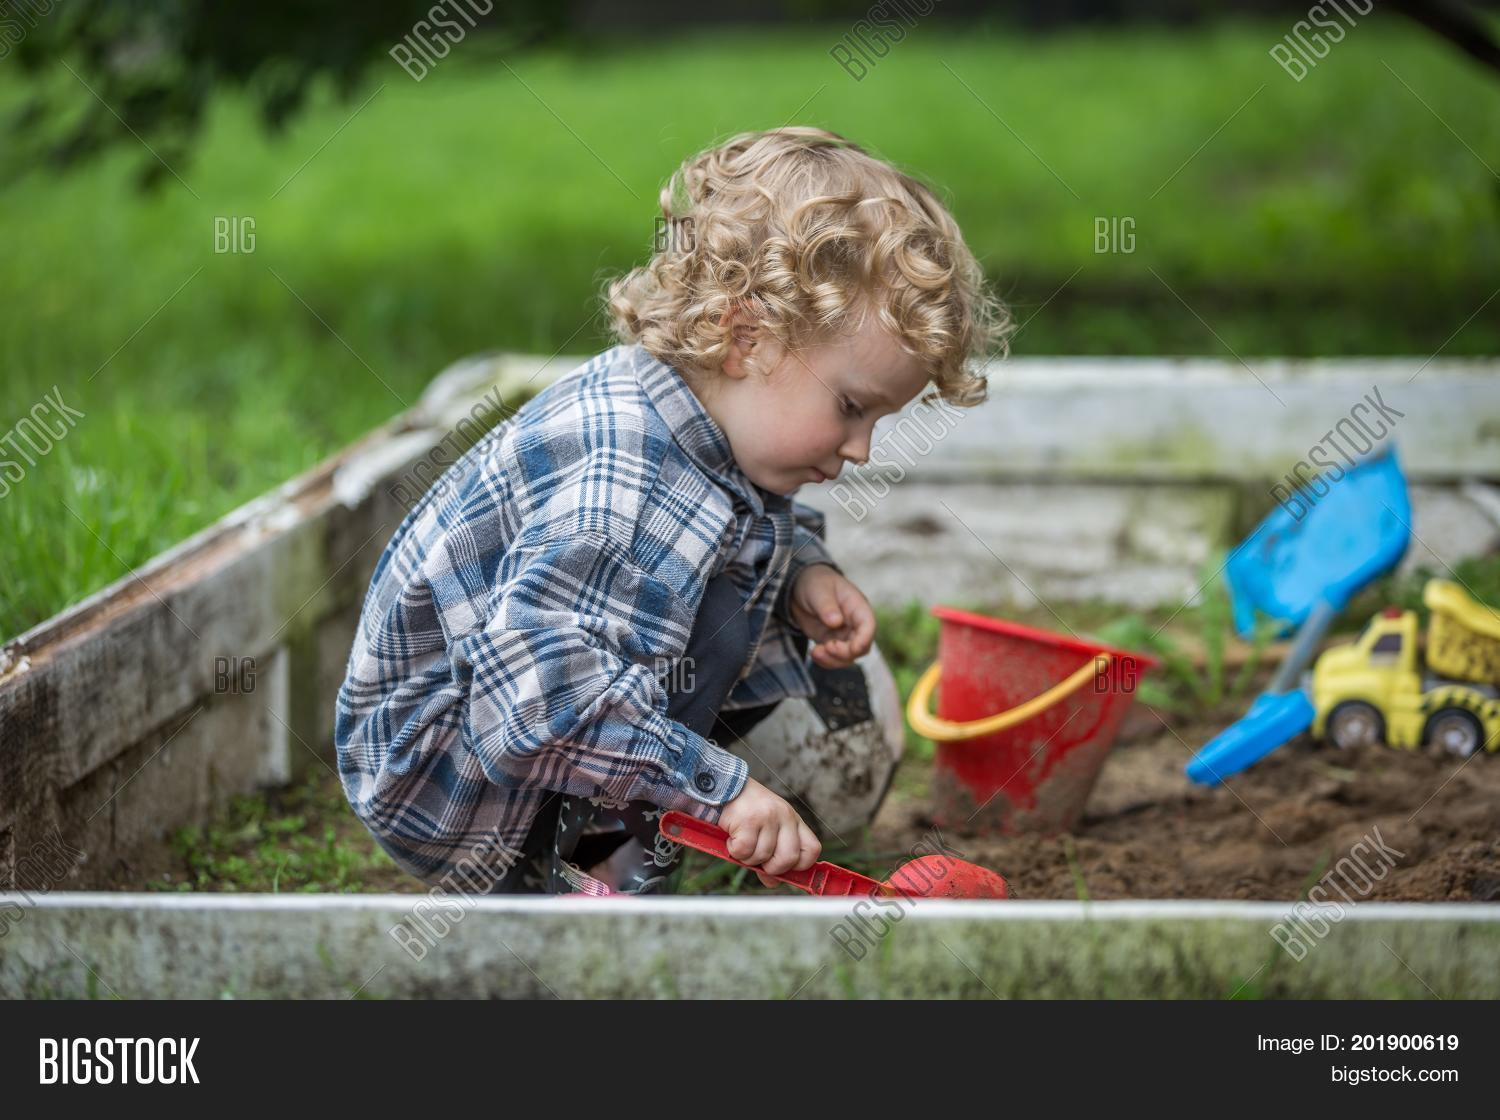 active,adorable,alone,baby,ball,beautiful,blond,boy,bright,bucket,casual,caucasian,child,childhood,color,concentrated,curly,cute,digging,dirty,enjoying,hair,happy,healthy,kid,kindergarten,little,looking,lost,natural,nature,one,outdoors,person,playful,playground,portrait,safety,sand,sandbox,sandpit,shirt,summer,sunny,thought,toddler,toy,young